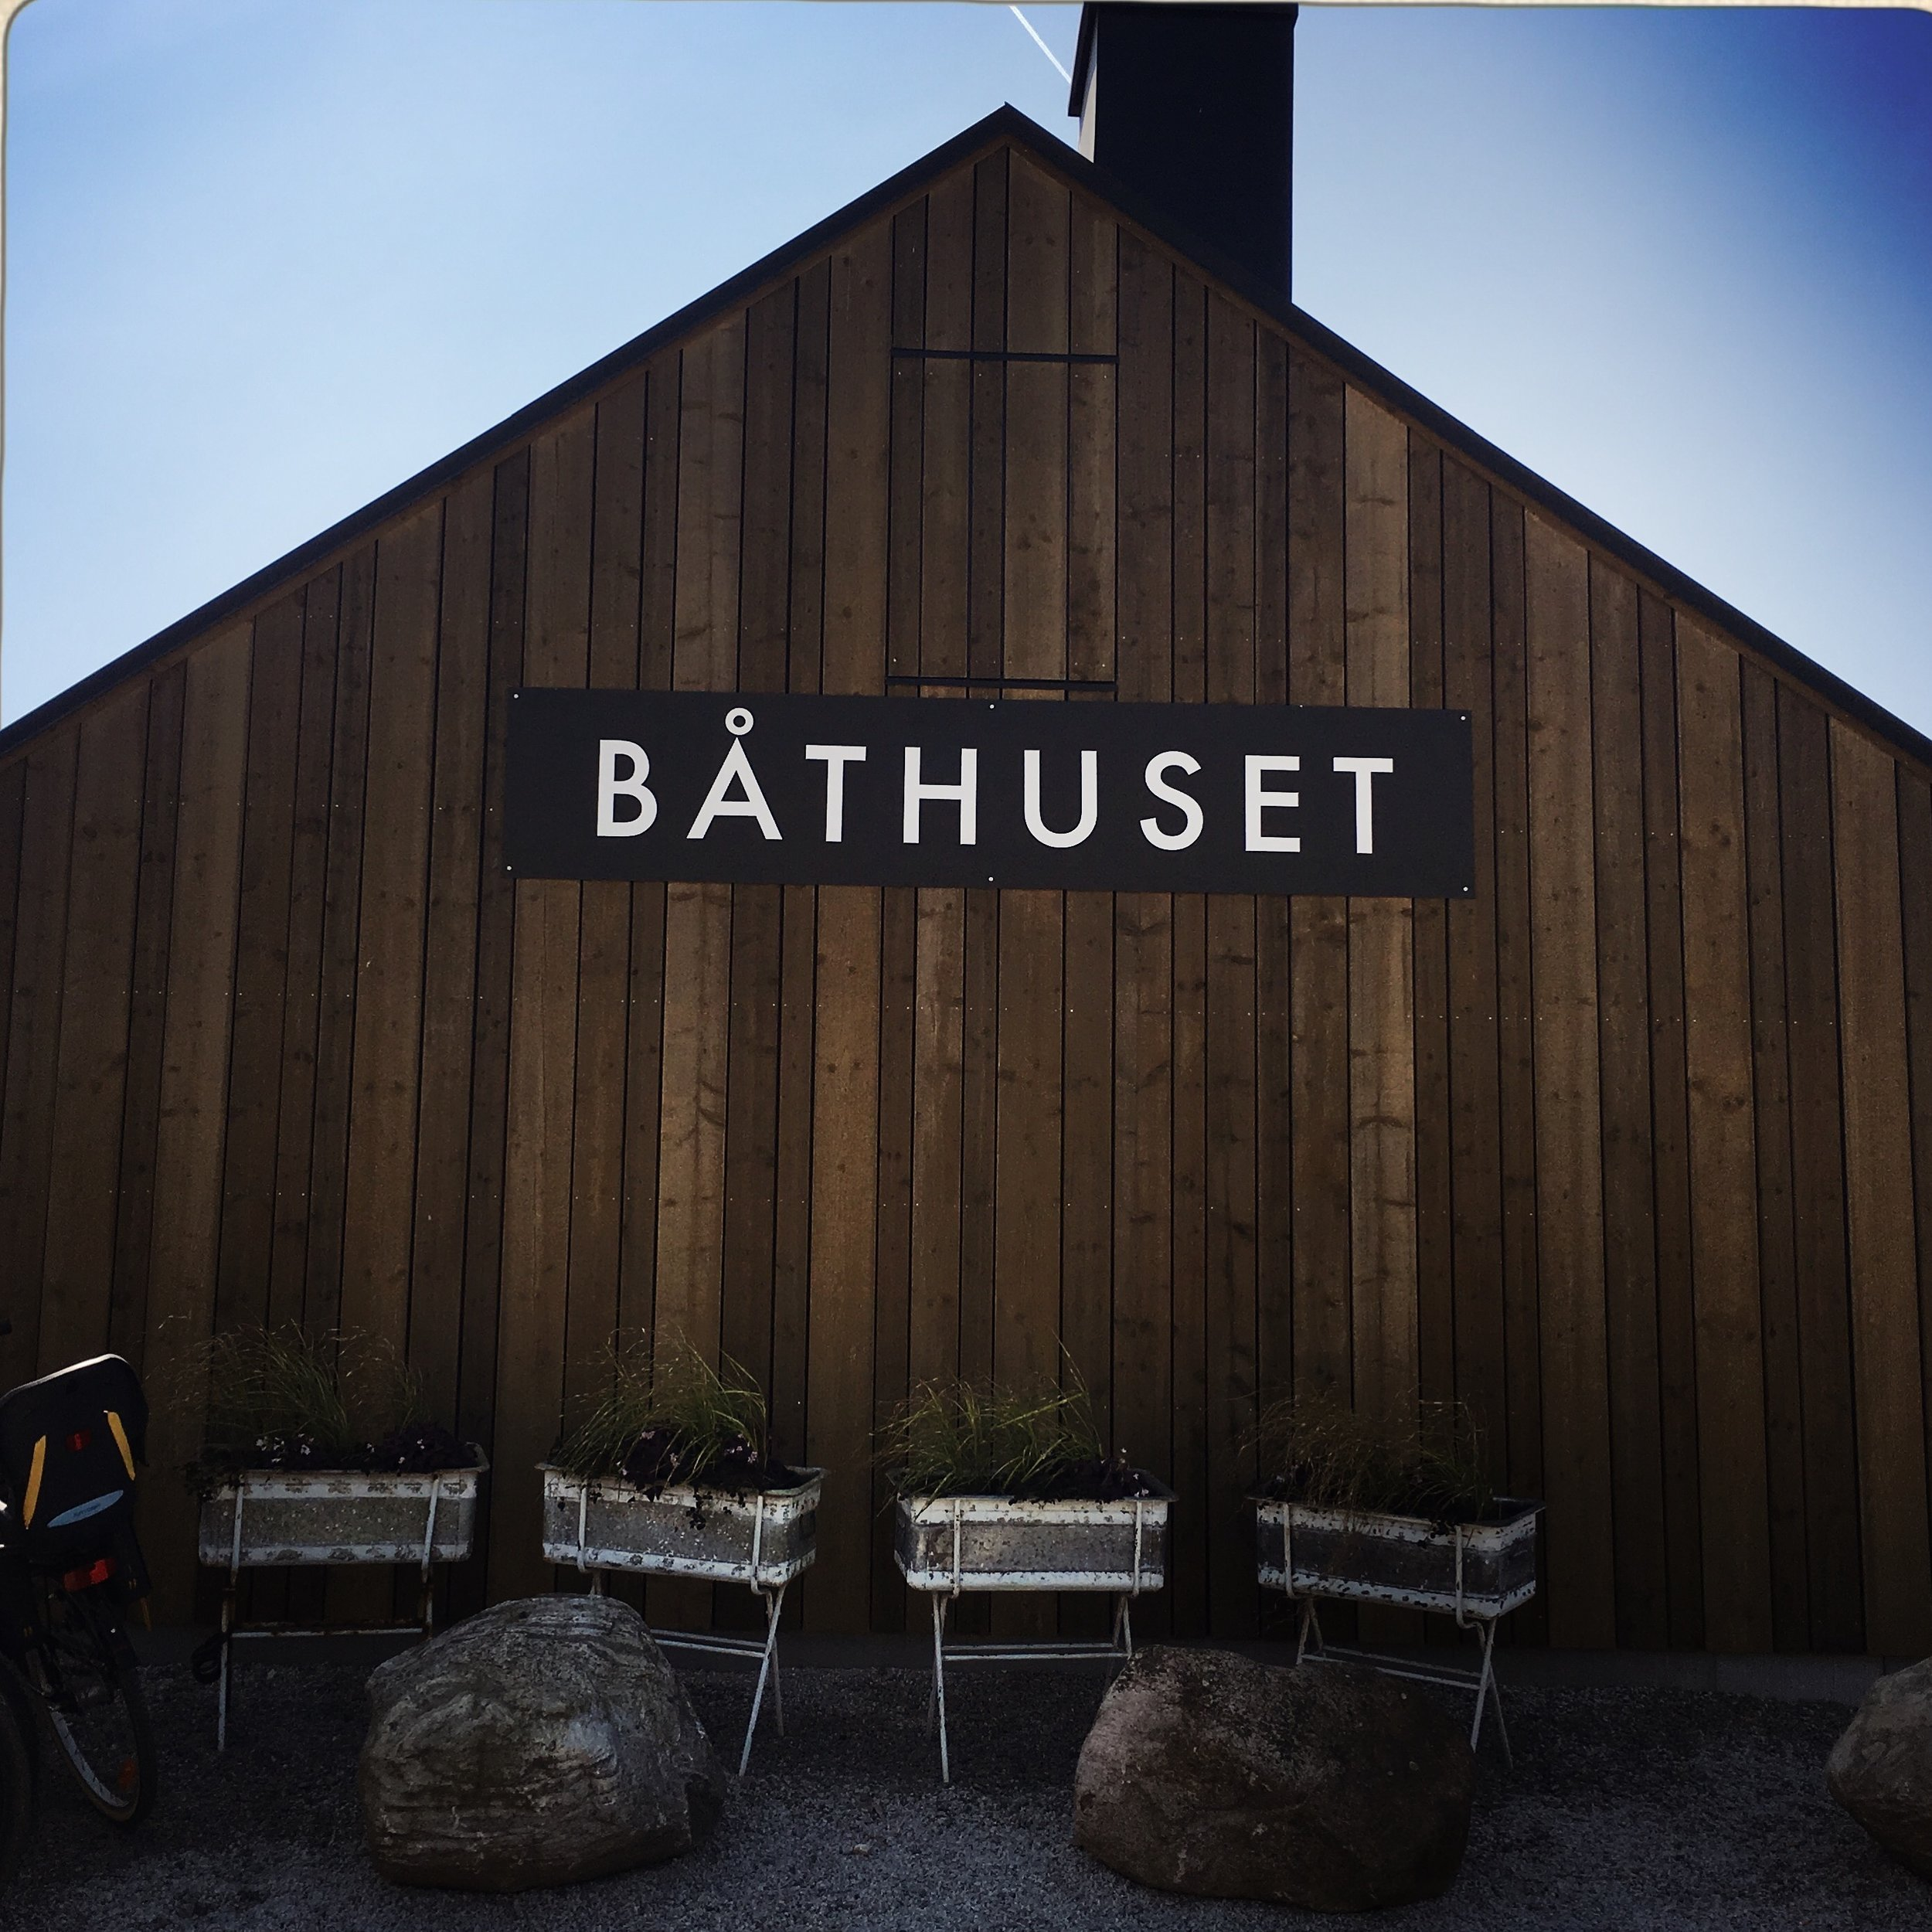 Three best cafes in the world? - 1. Buvette, New York.2. Boathouse Shelly beach, Sydney.3. Båthuset, Mölle, Sweden.